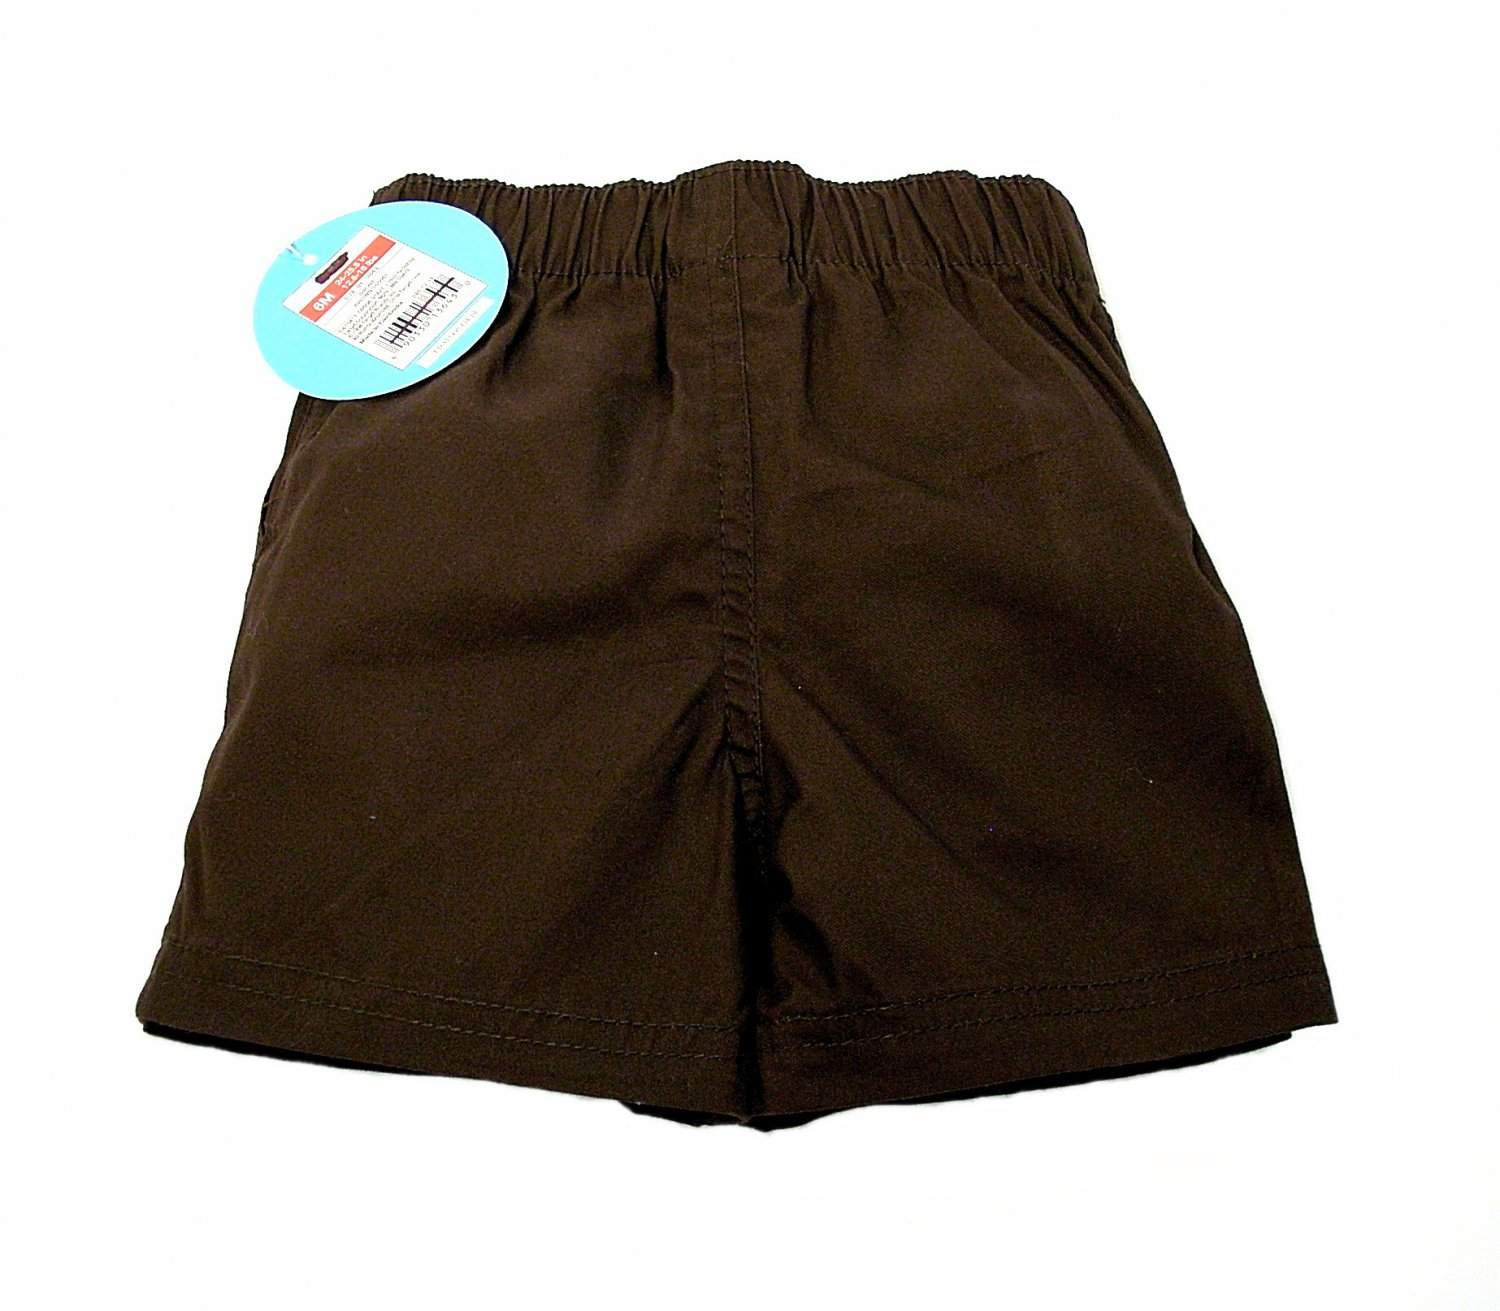 Circo Infant Boys Brown Cotton Shorts 6 Months